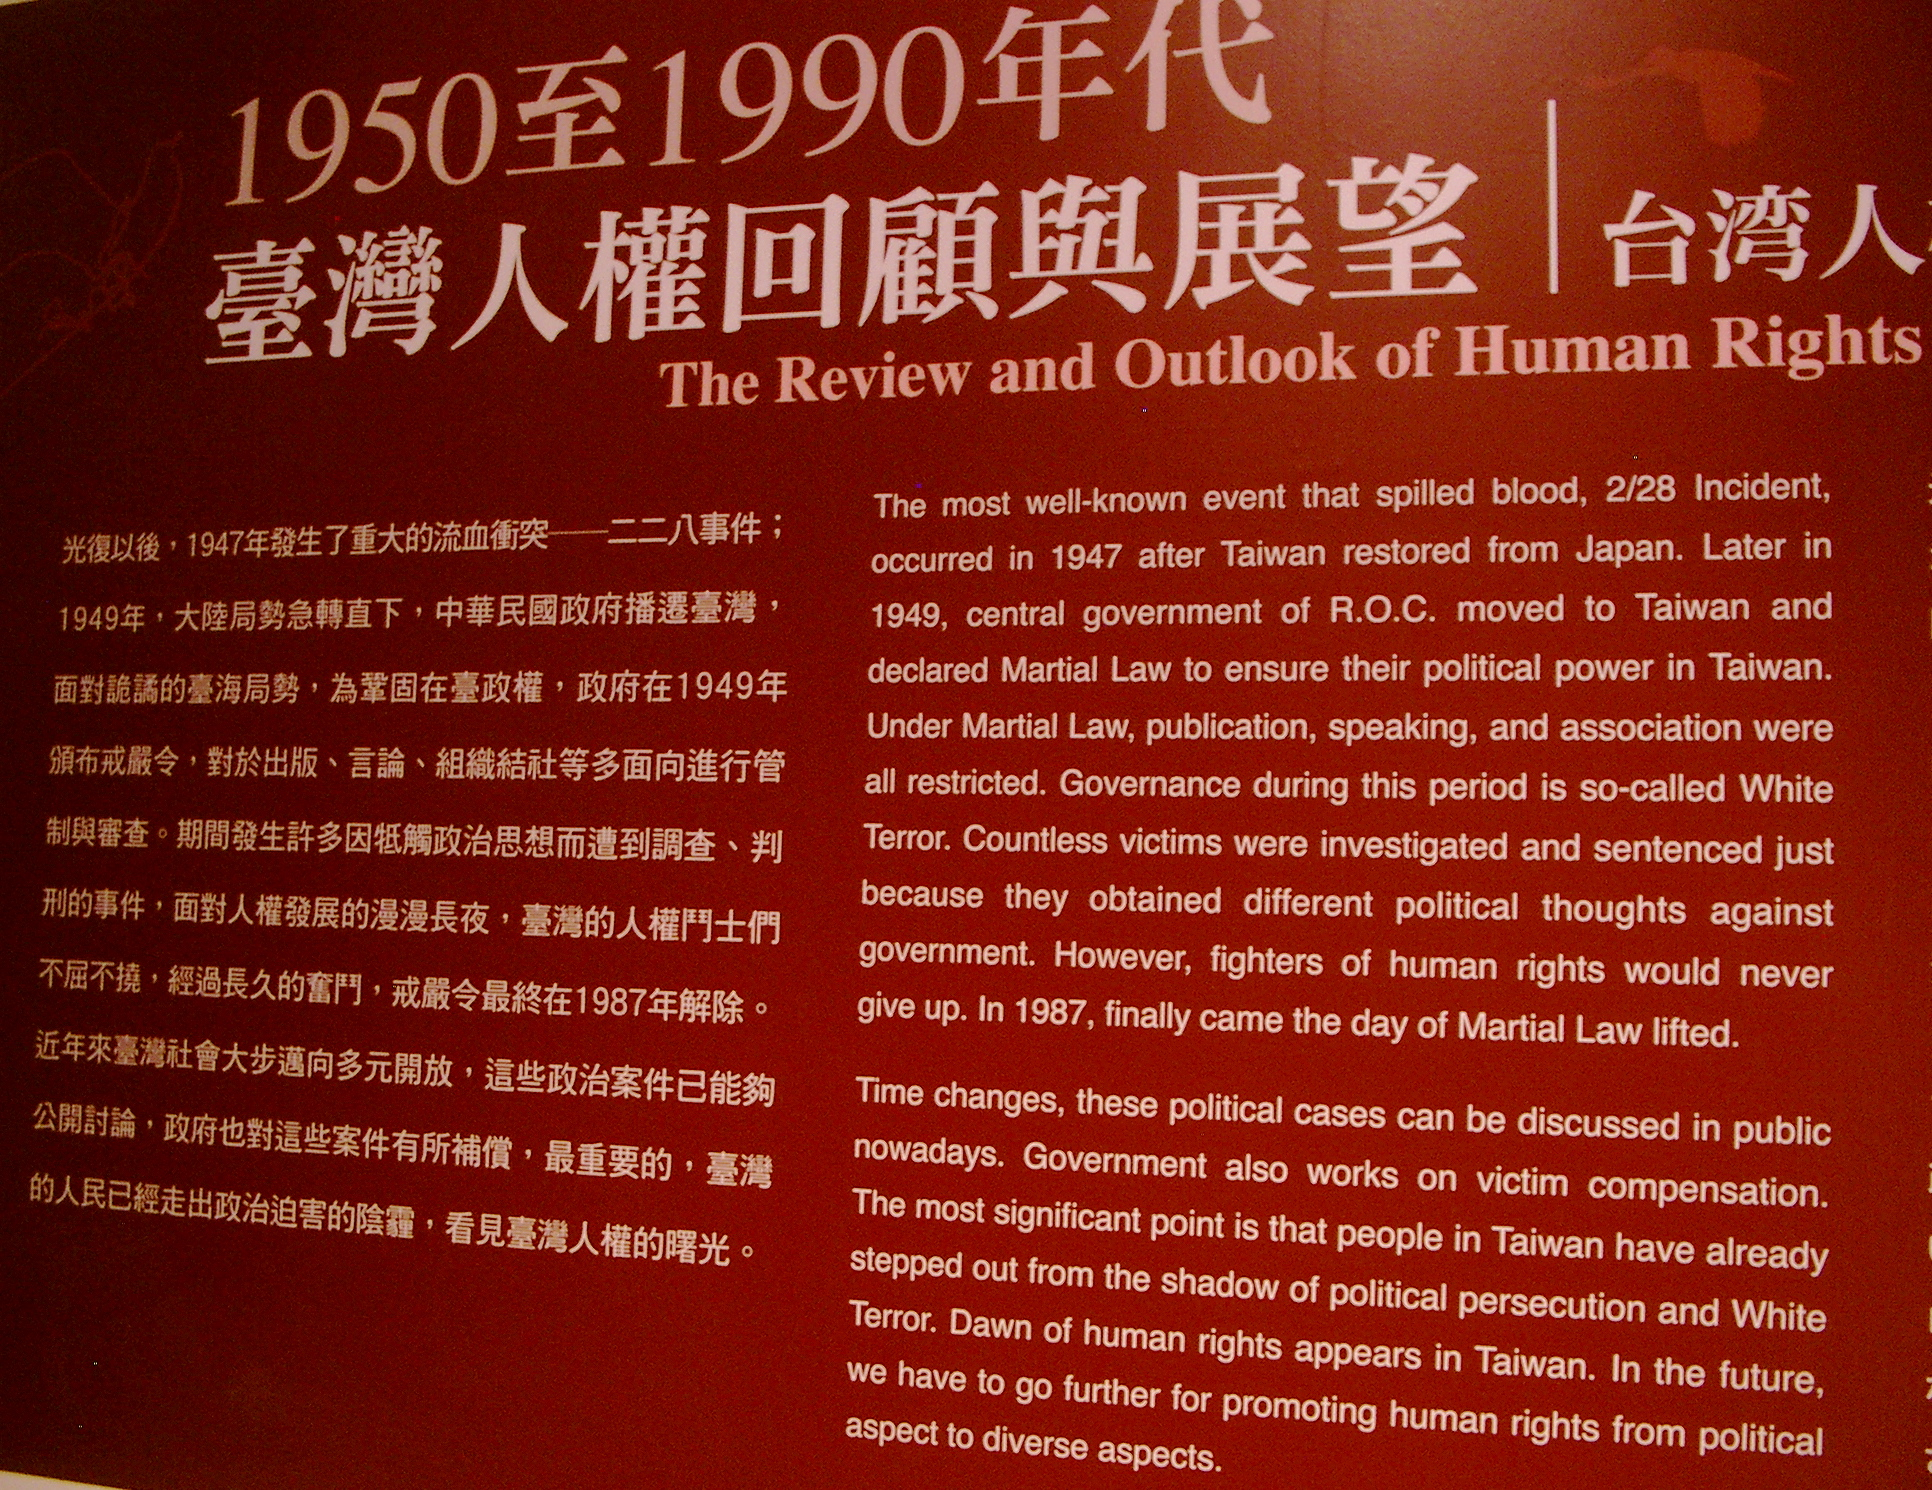 Jingmei Human Rights Memorial exhibition